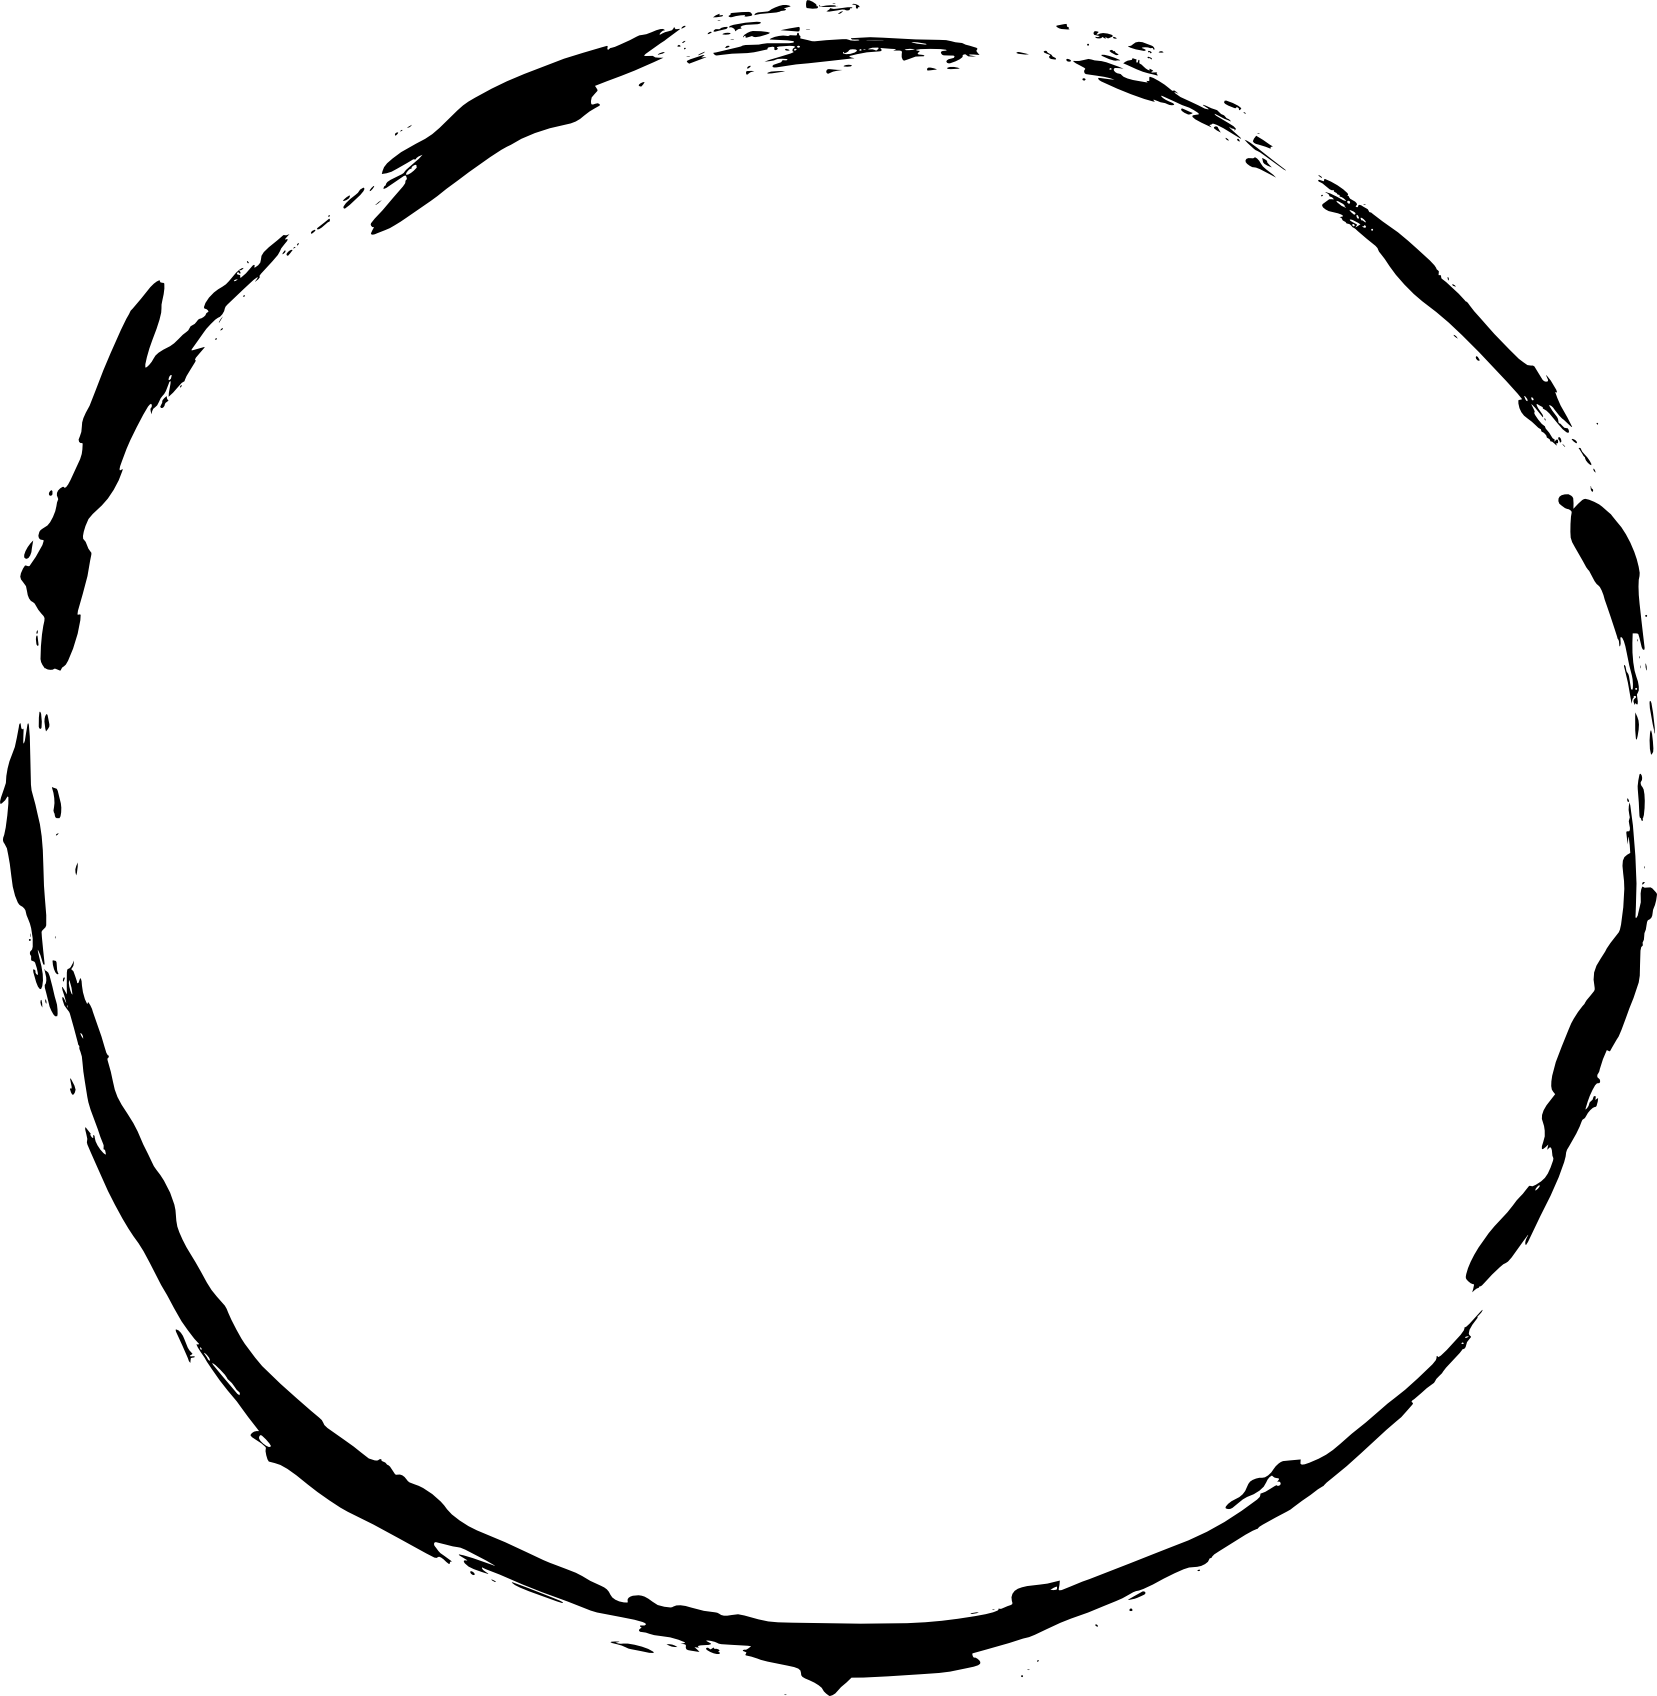 Stamp circle png. Grunge frame transparent